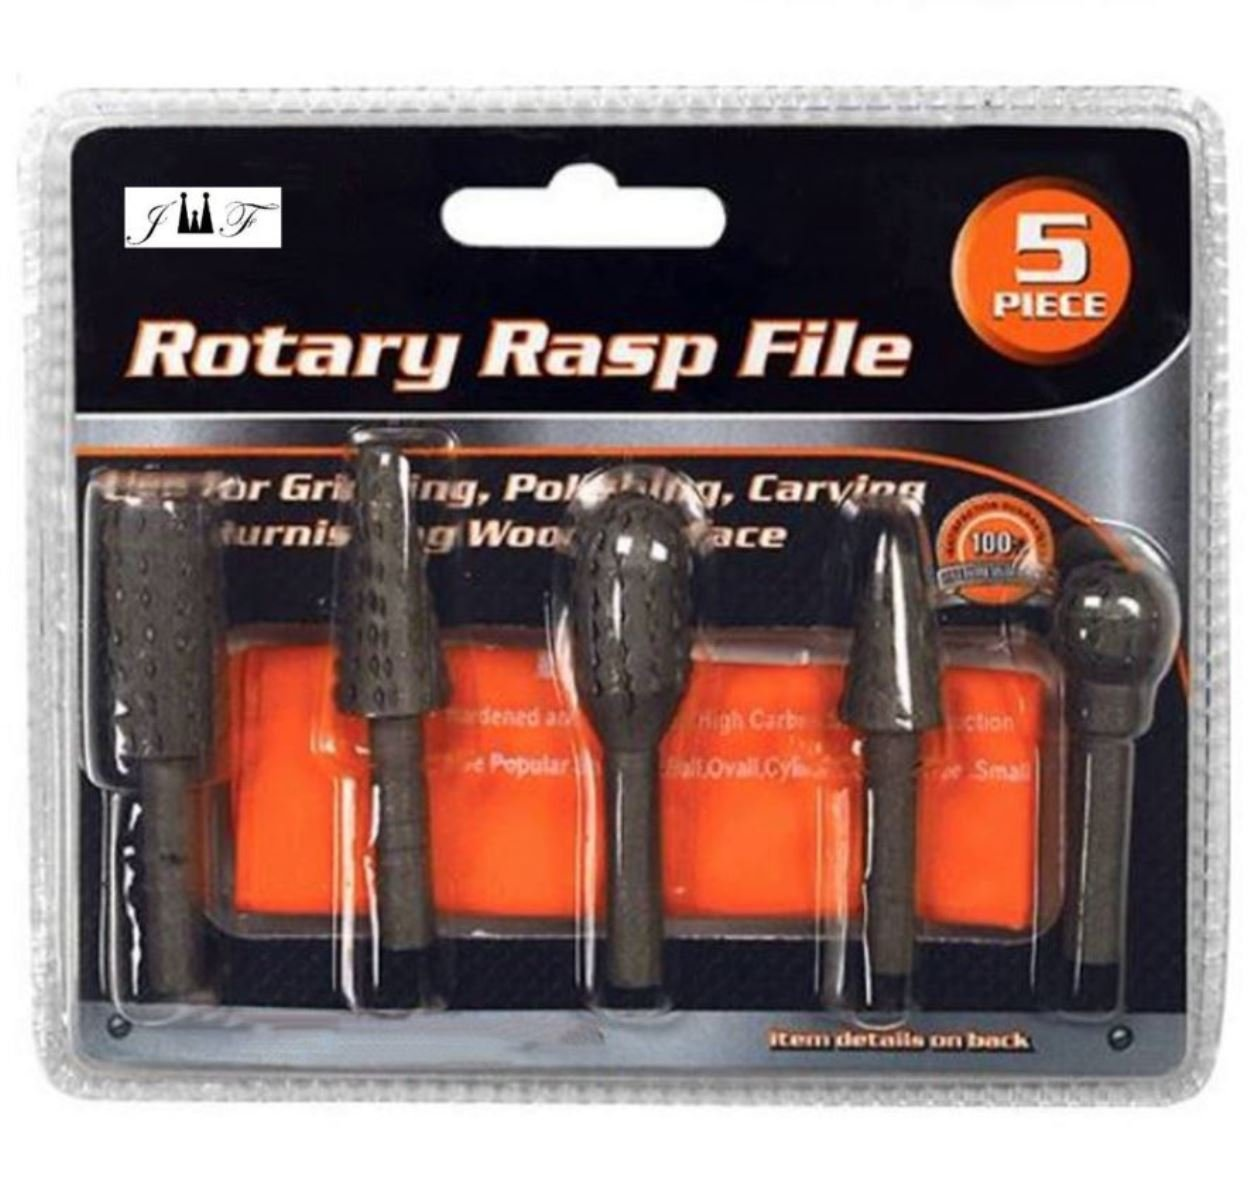 Rotary Burr Set 5 Piece Set Of Heavy Duty And Durable 1//4 Shank Rotary Rasp File Set Small Tree Grinding Cylinder Large Tree Polishing Ball Carving Oval Wood Carving Trimming